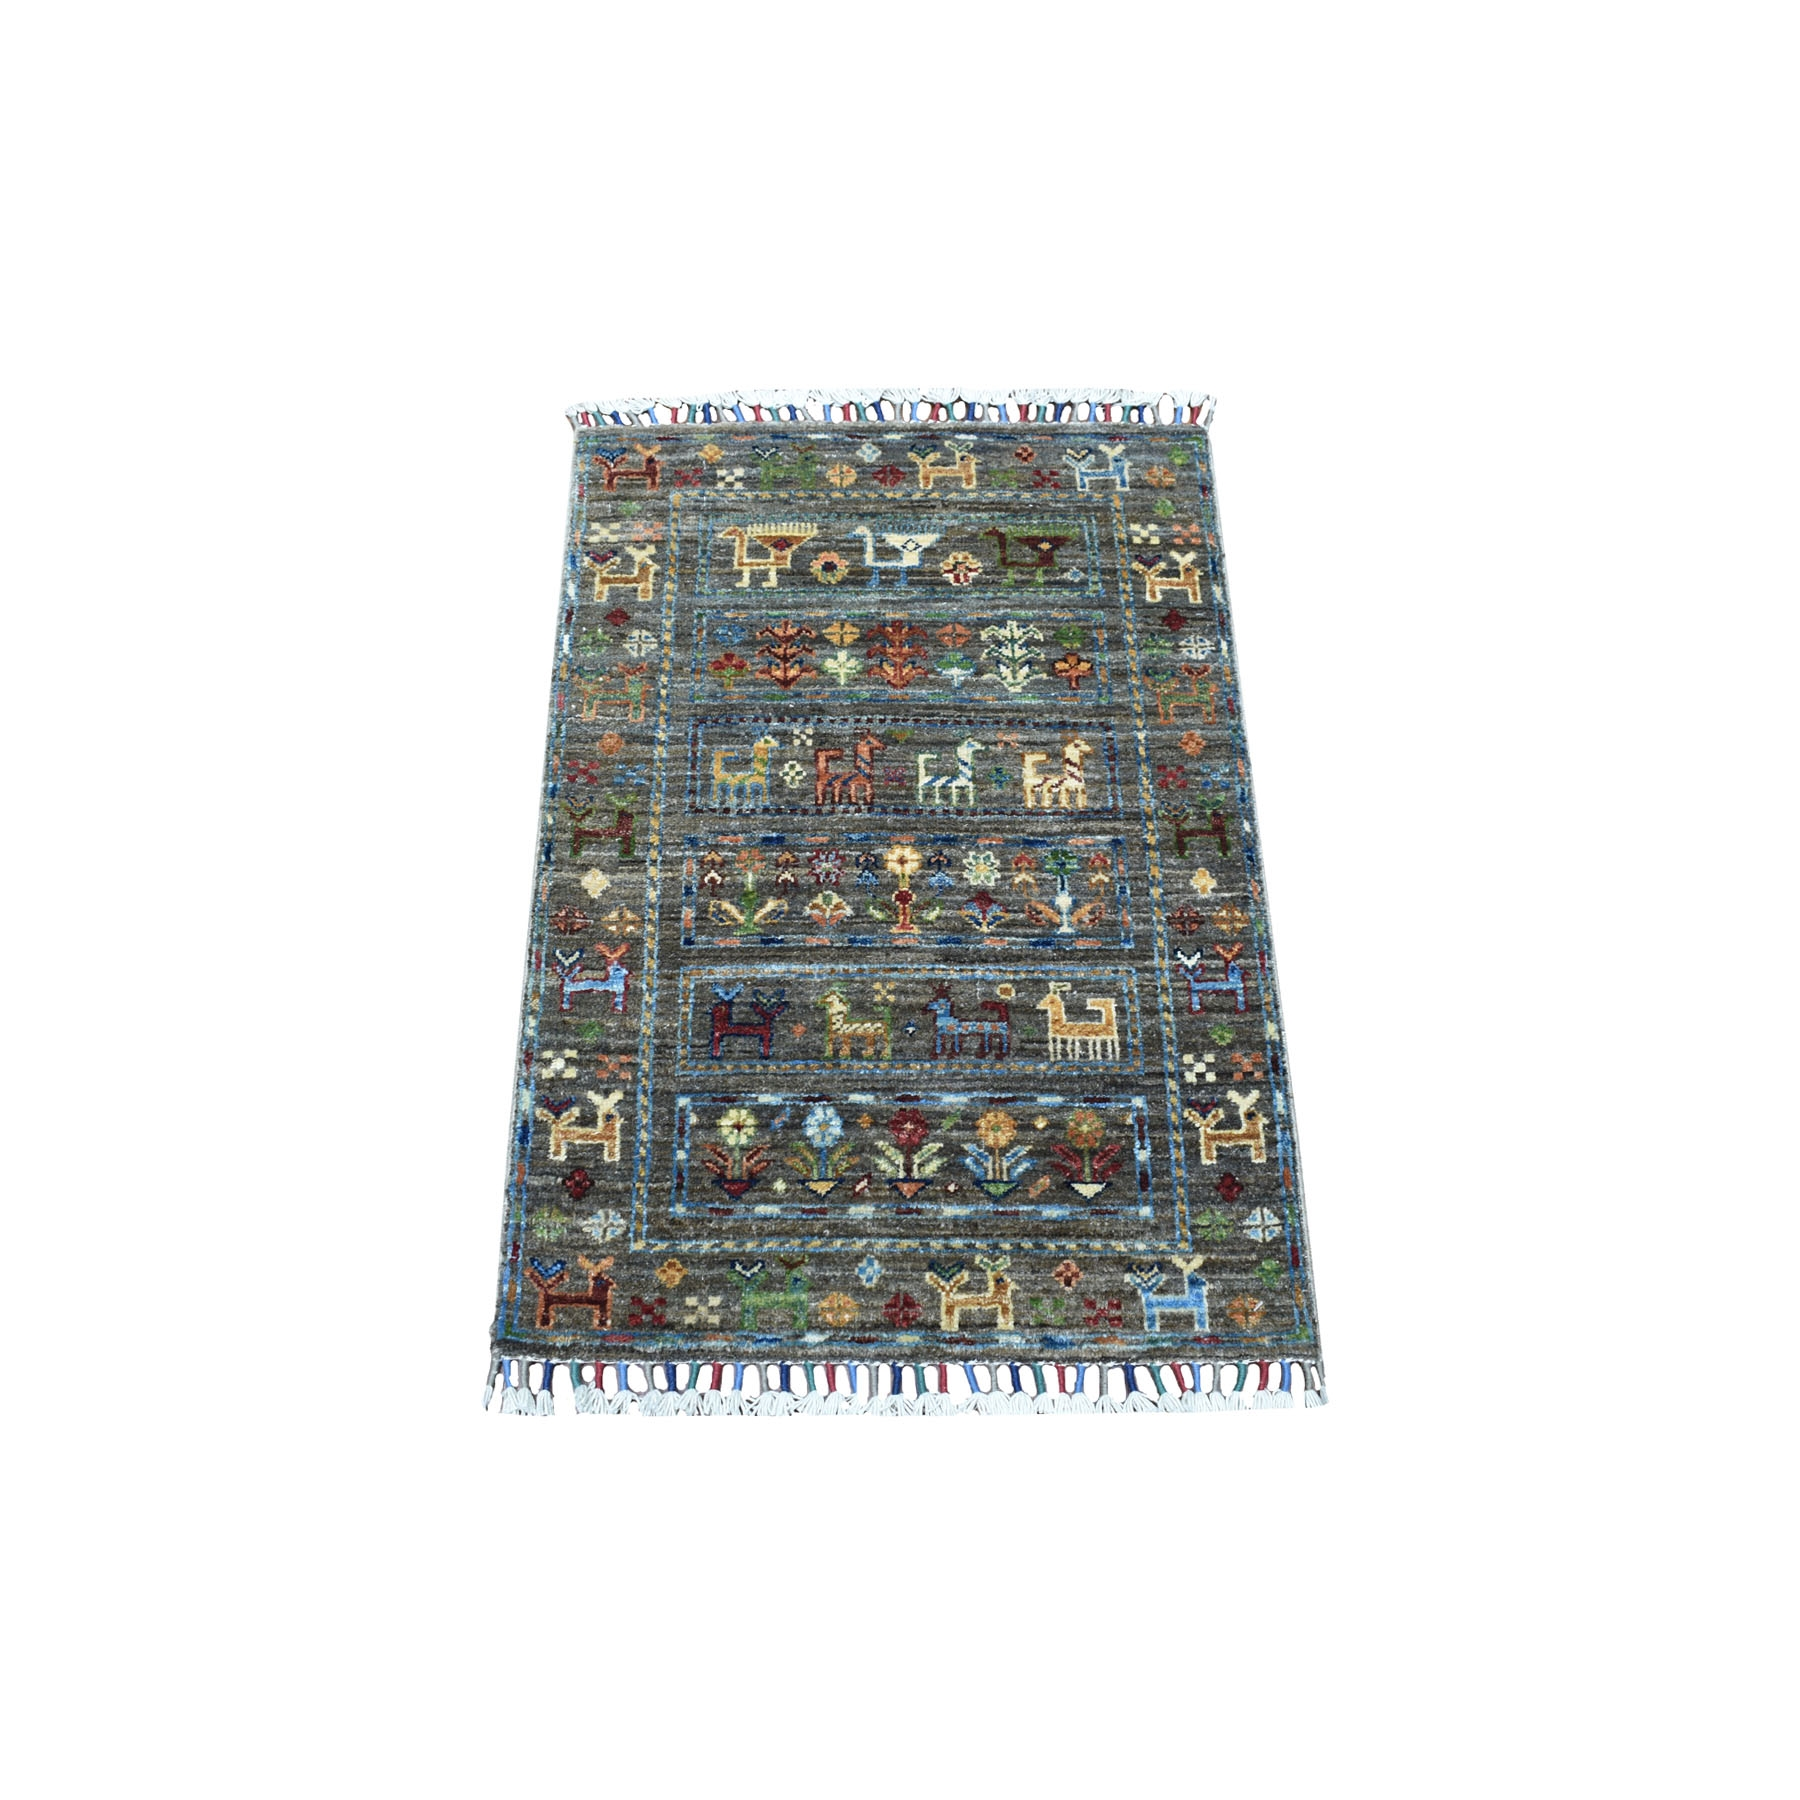 "2'x2'10"" Gray Hand Knotted With Colorful Tassles Super Kazak Khorjin Design Afghan Wool Oriental Rug"